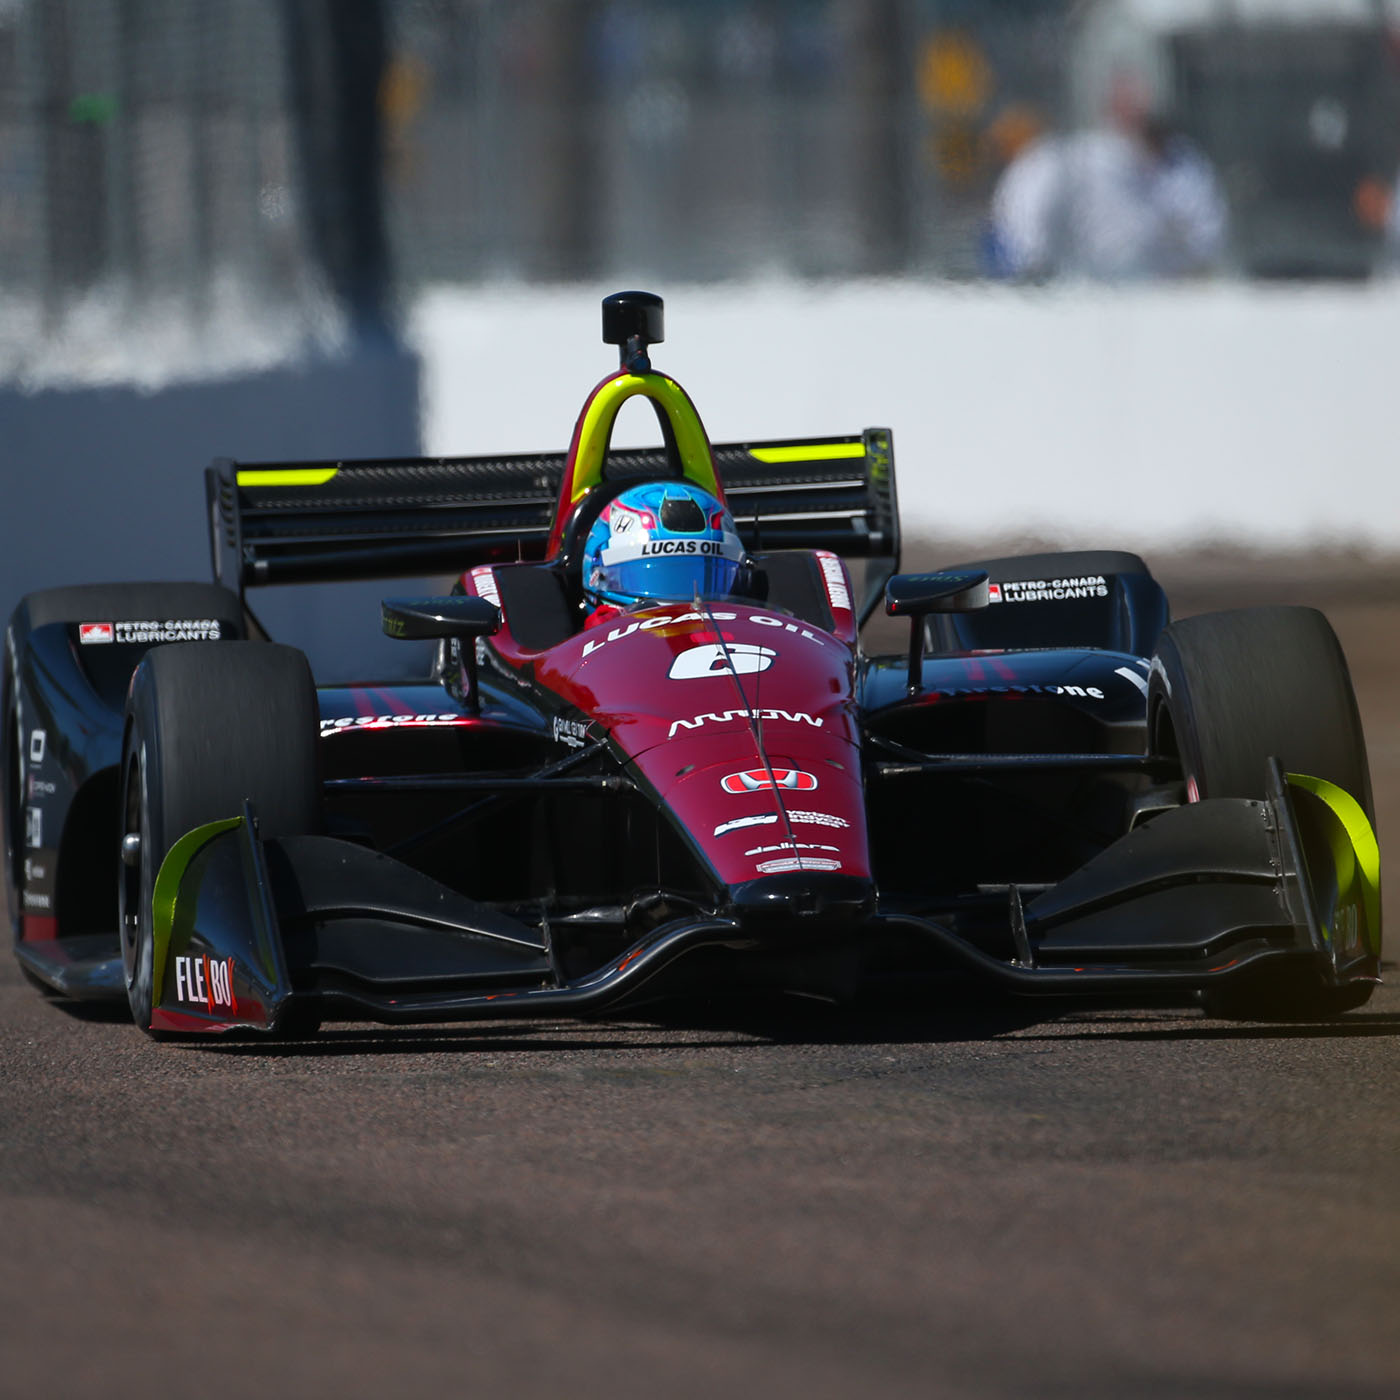 MP 848: The Week In IndyCar, June 3, Listener Q&A